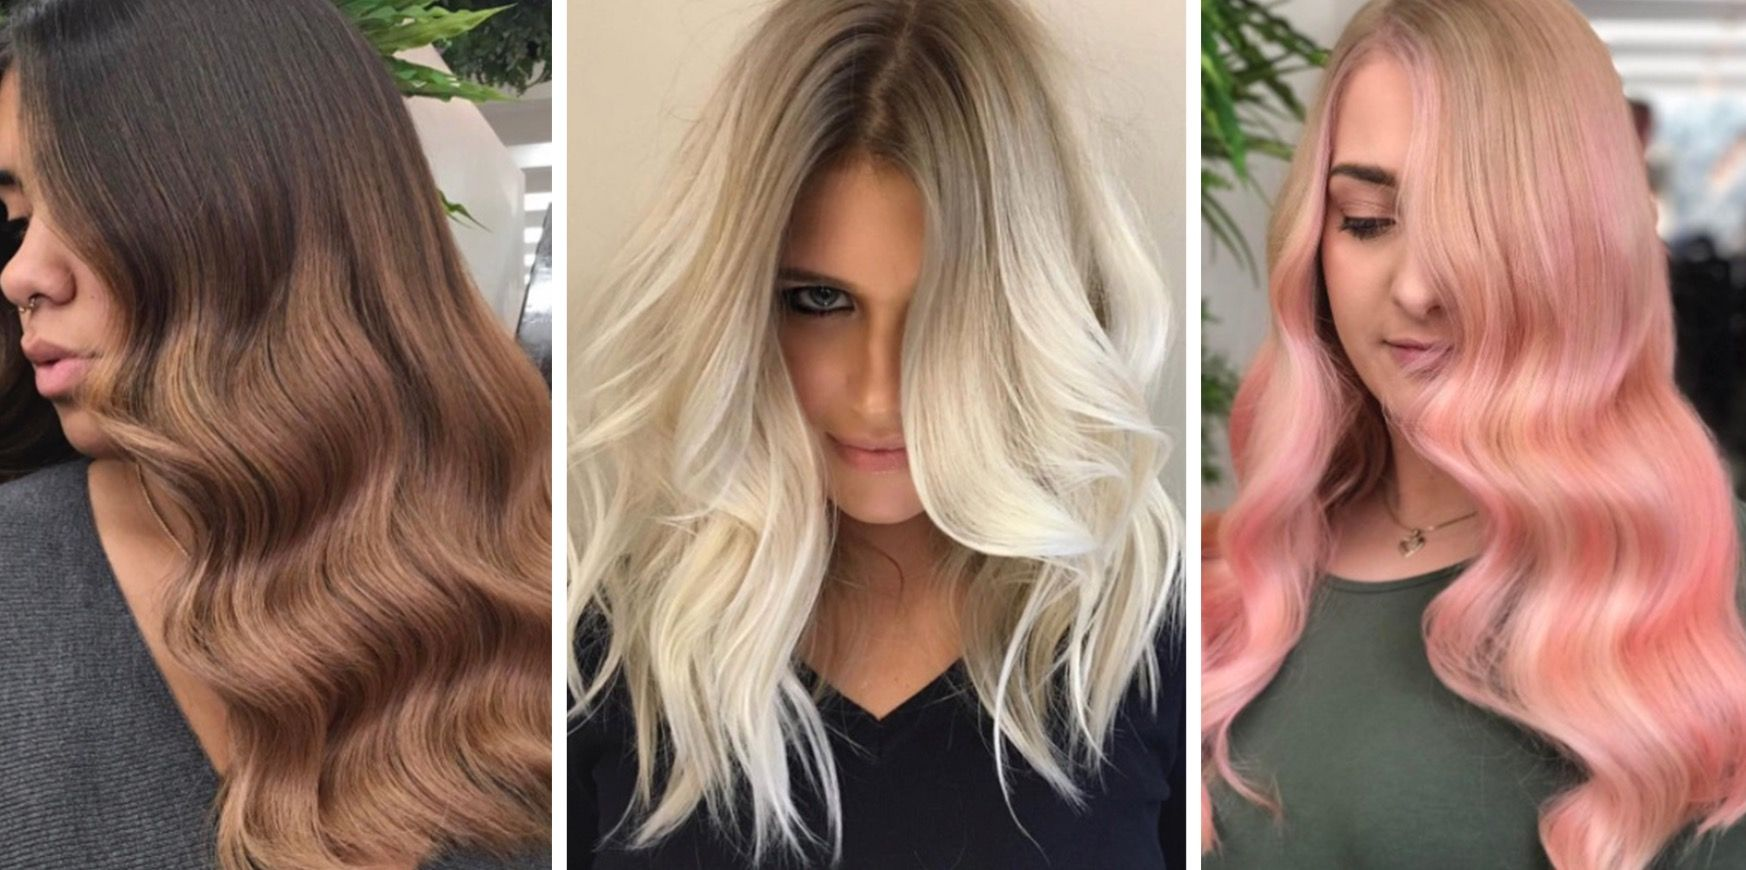 What Hair Colour Will Suit You Mistakes To Avoid - Hairstyle colour photo